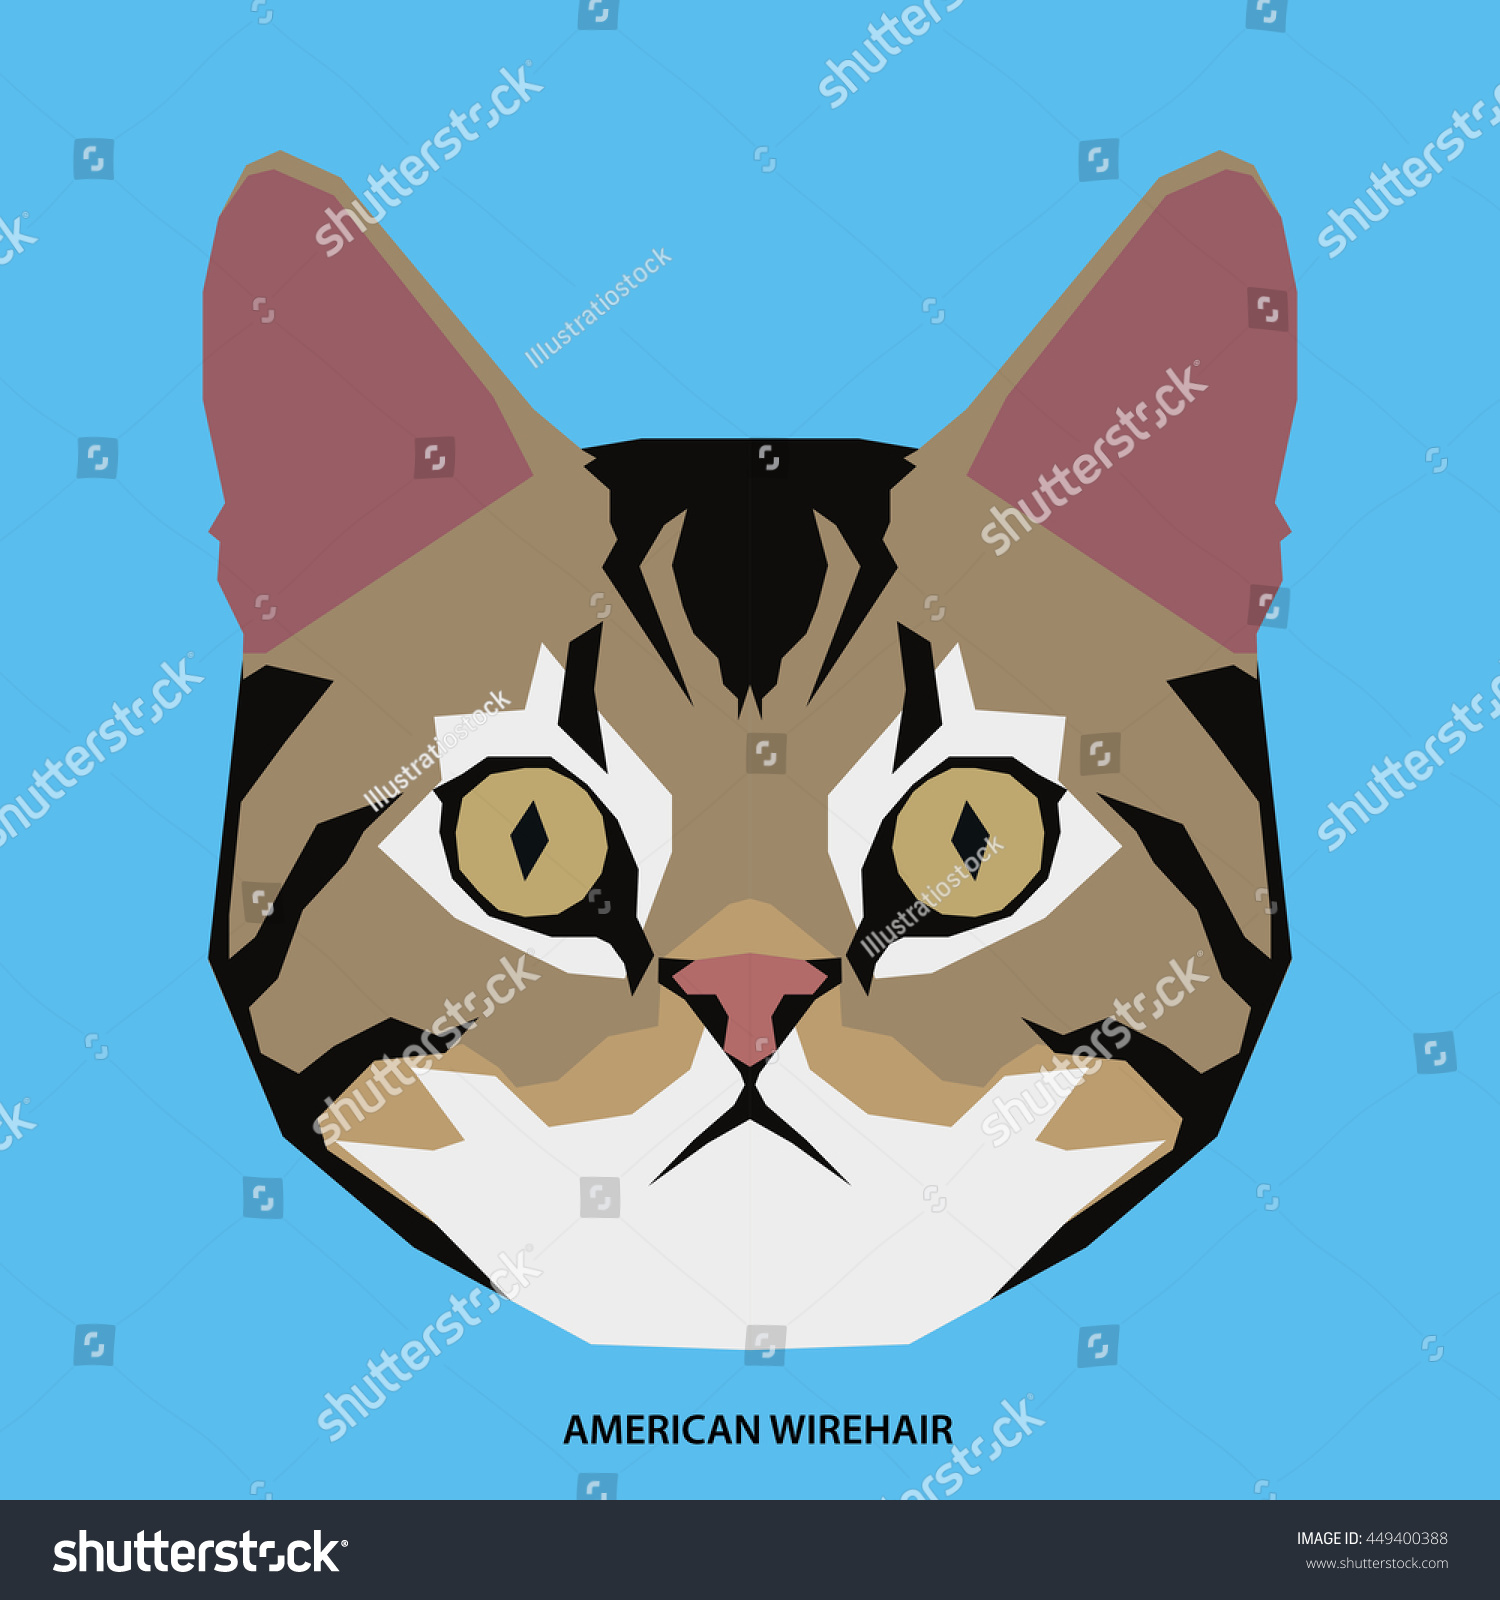 American Wirehair Isolated Cat Breed Vector Stock Vector (Royalty ...